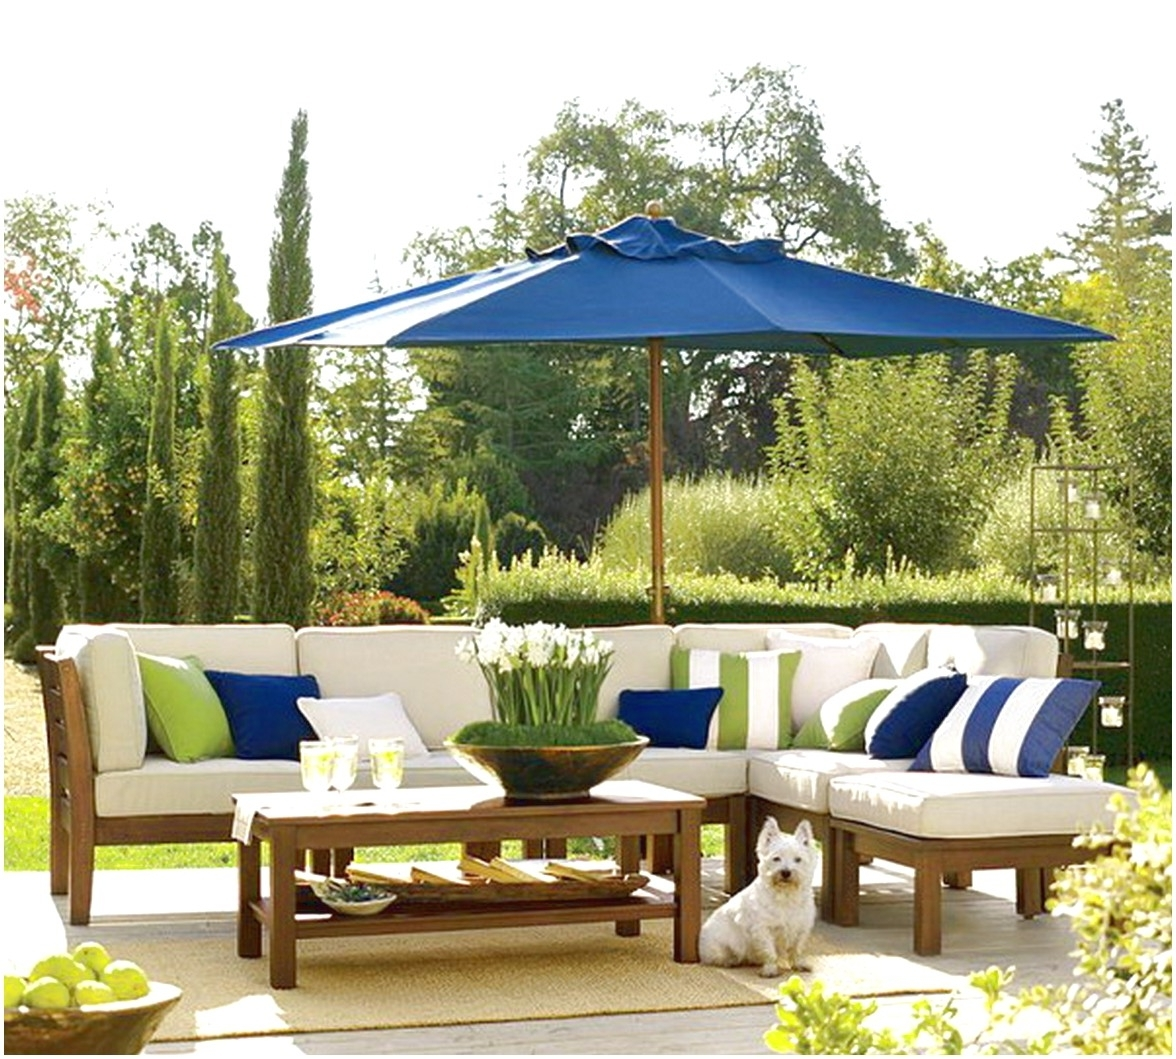 Famous Outdoor Patio Furniture With Blue Patio Umbrella : Surprising Design Throughout Blue Patio Umbrellas (View 8 of 20)